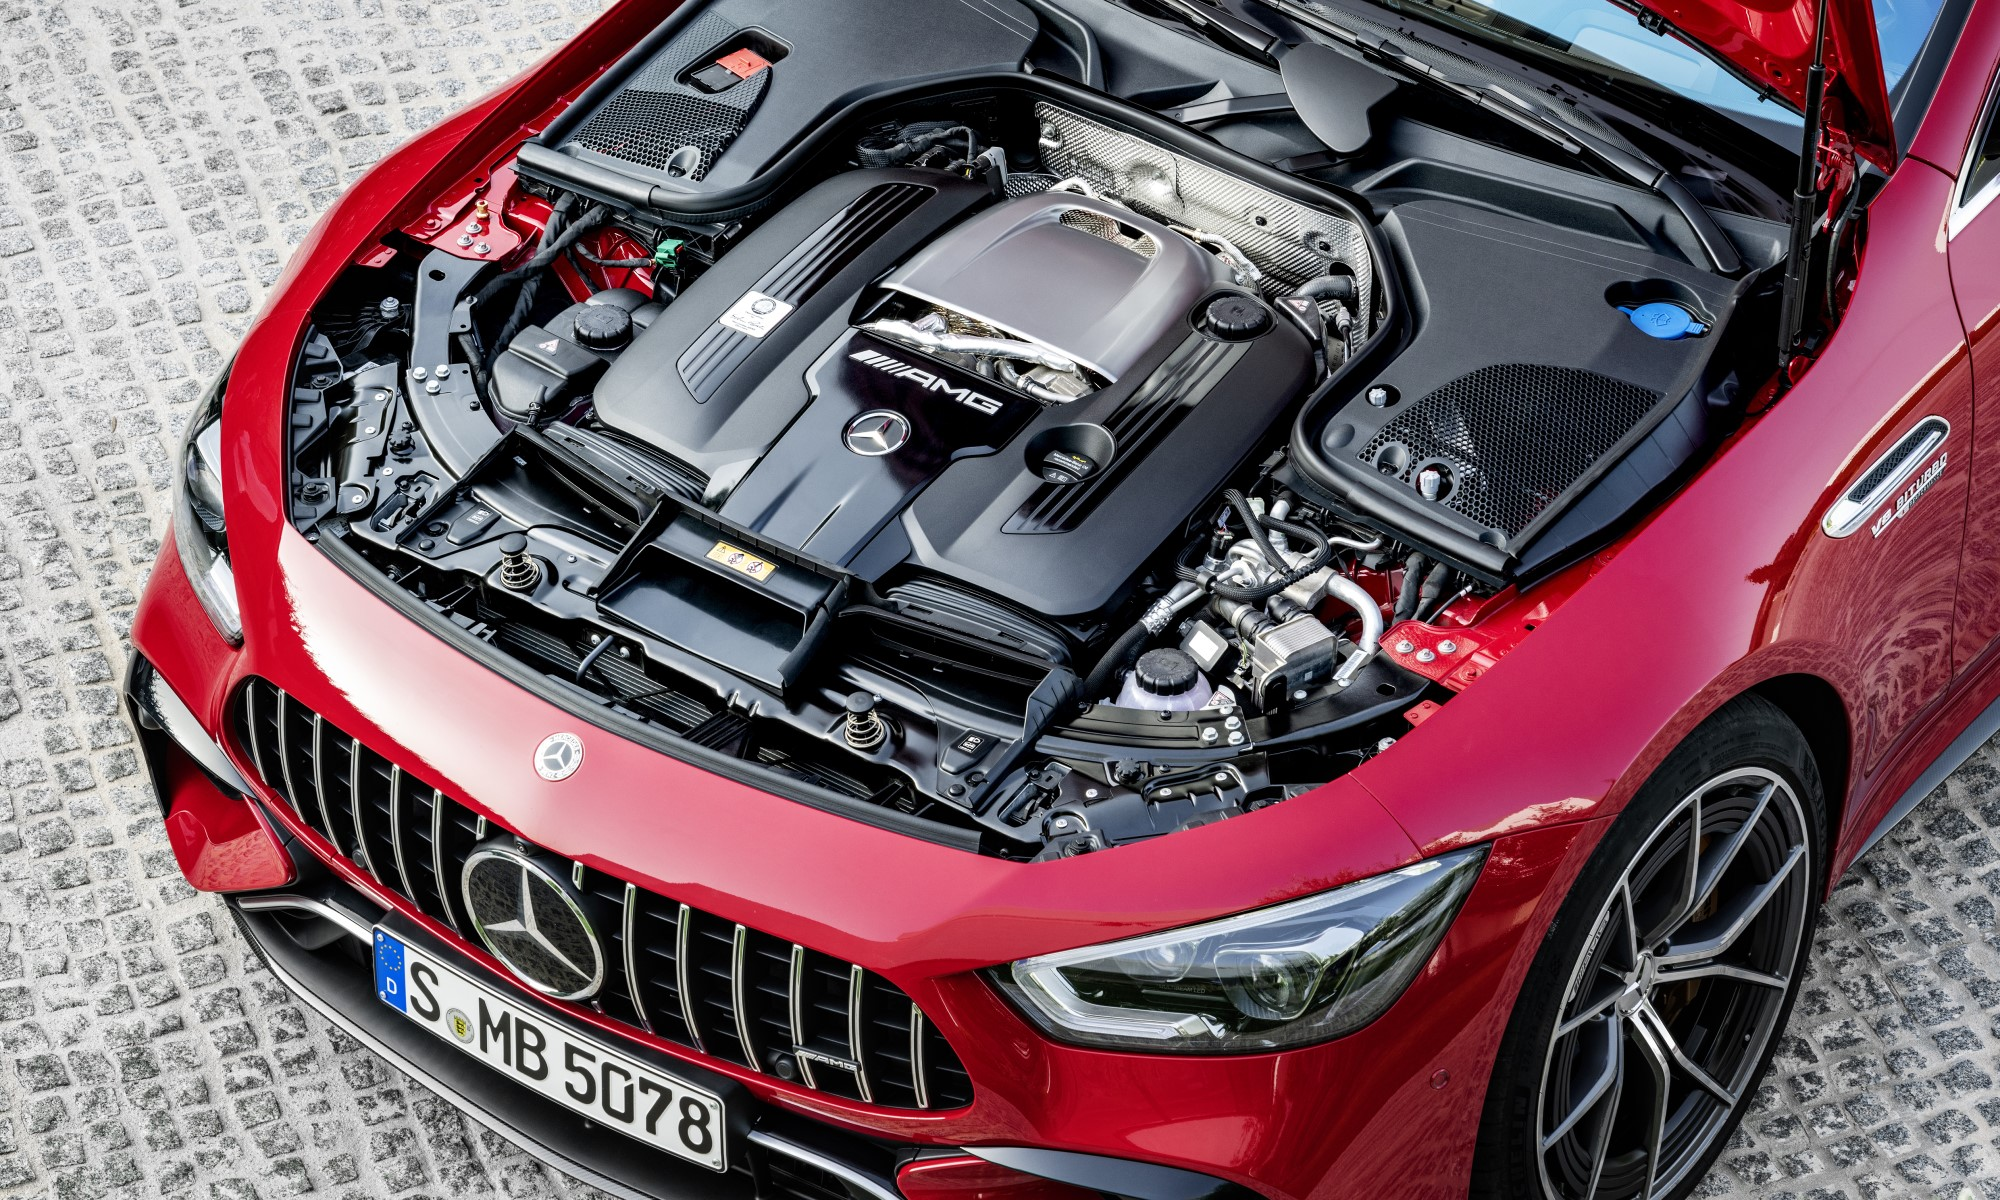 Mercedes-AMG GT63 S E Performance engine